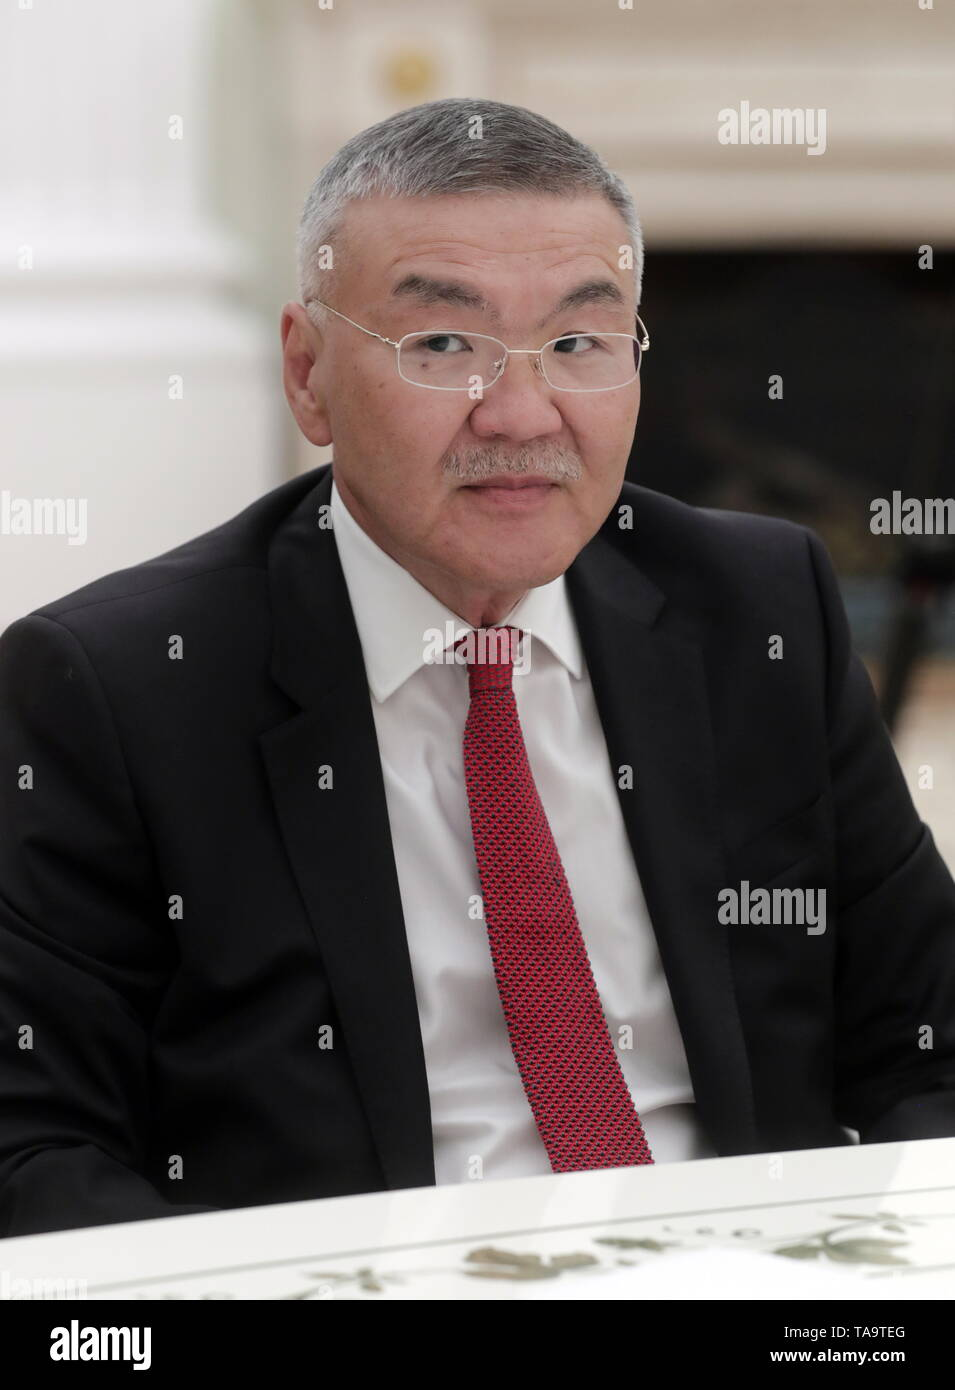 Moscow, Russia. 23rd May, 2019. MOSCOW, RUSSIA - MAY 23, 2019: Former Head of Kalmykia Republic Alexei Orlov during a meeting of Russia's President Vladimir Putin with former heads of Russian regions, at the Moscow Kremlin. Mikhail Metzel/TASS Credit: ITAR-TASS News Agency/Alamy Live News - Stock Image